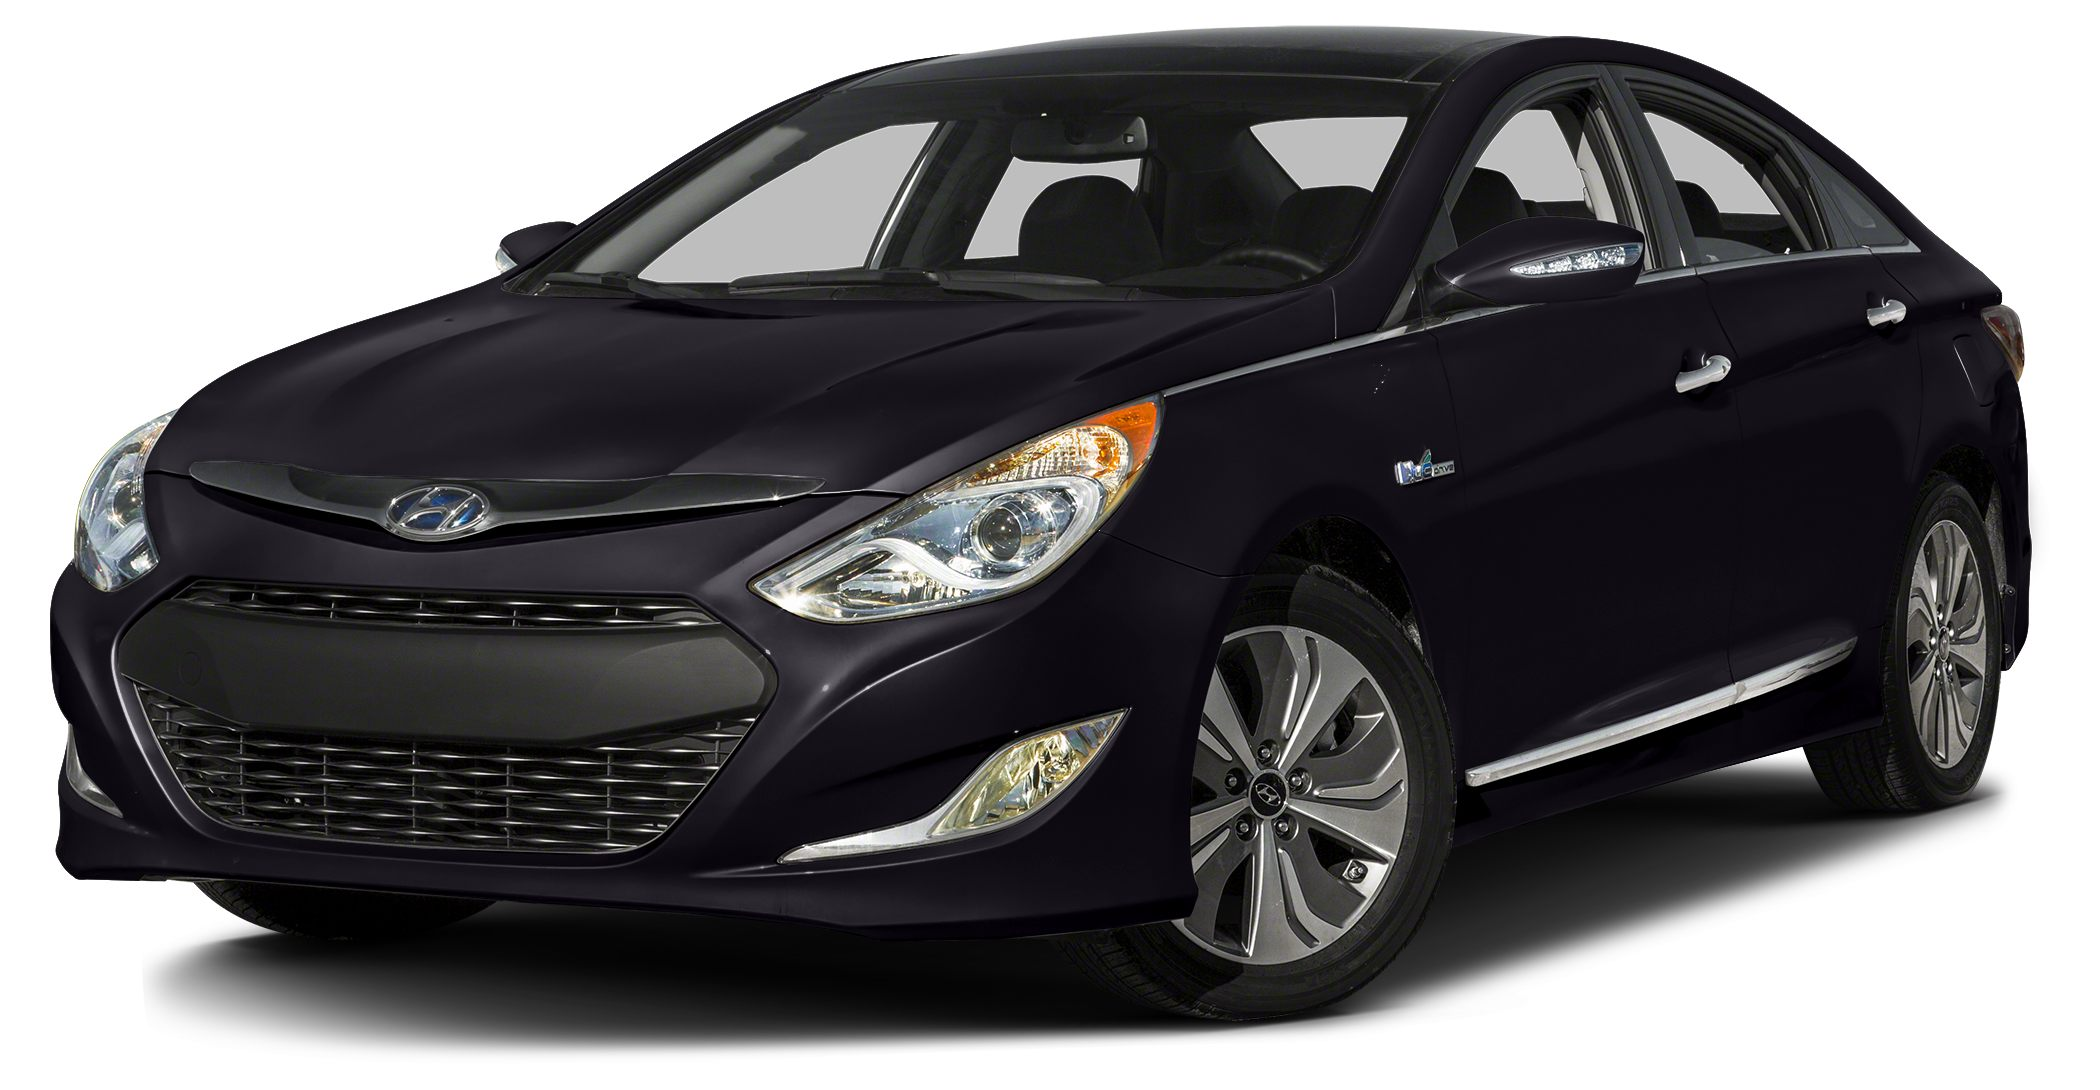 2015 Hyundai Sonata Hybrid Limited Must finance with HMFC to collect all and full discounts Pric